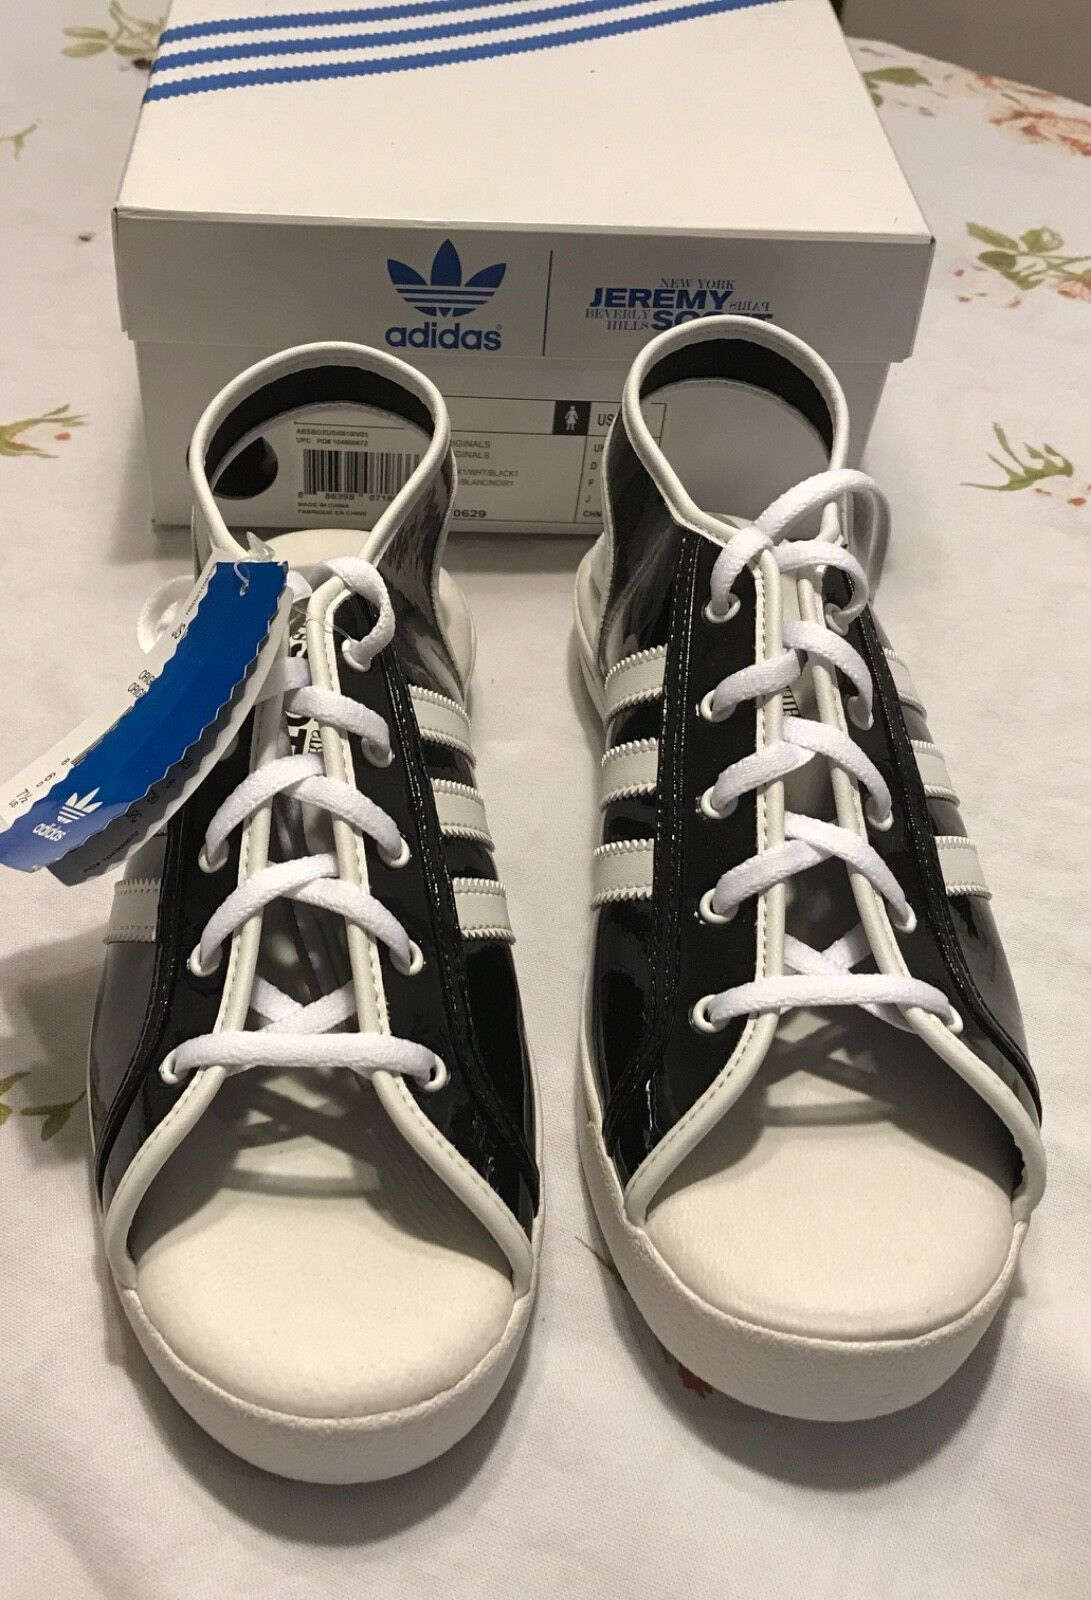 Rare Jeremy Scott Adidas Women's Open Toe Sandal Black White lace ups NIB sexy